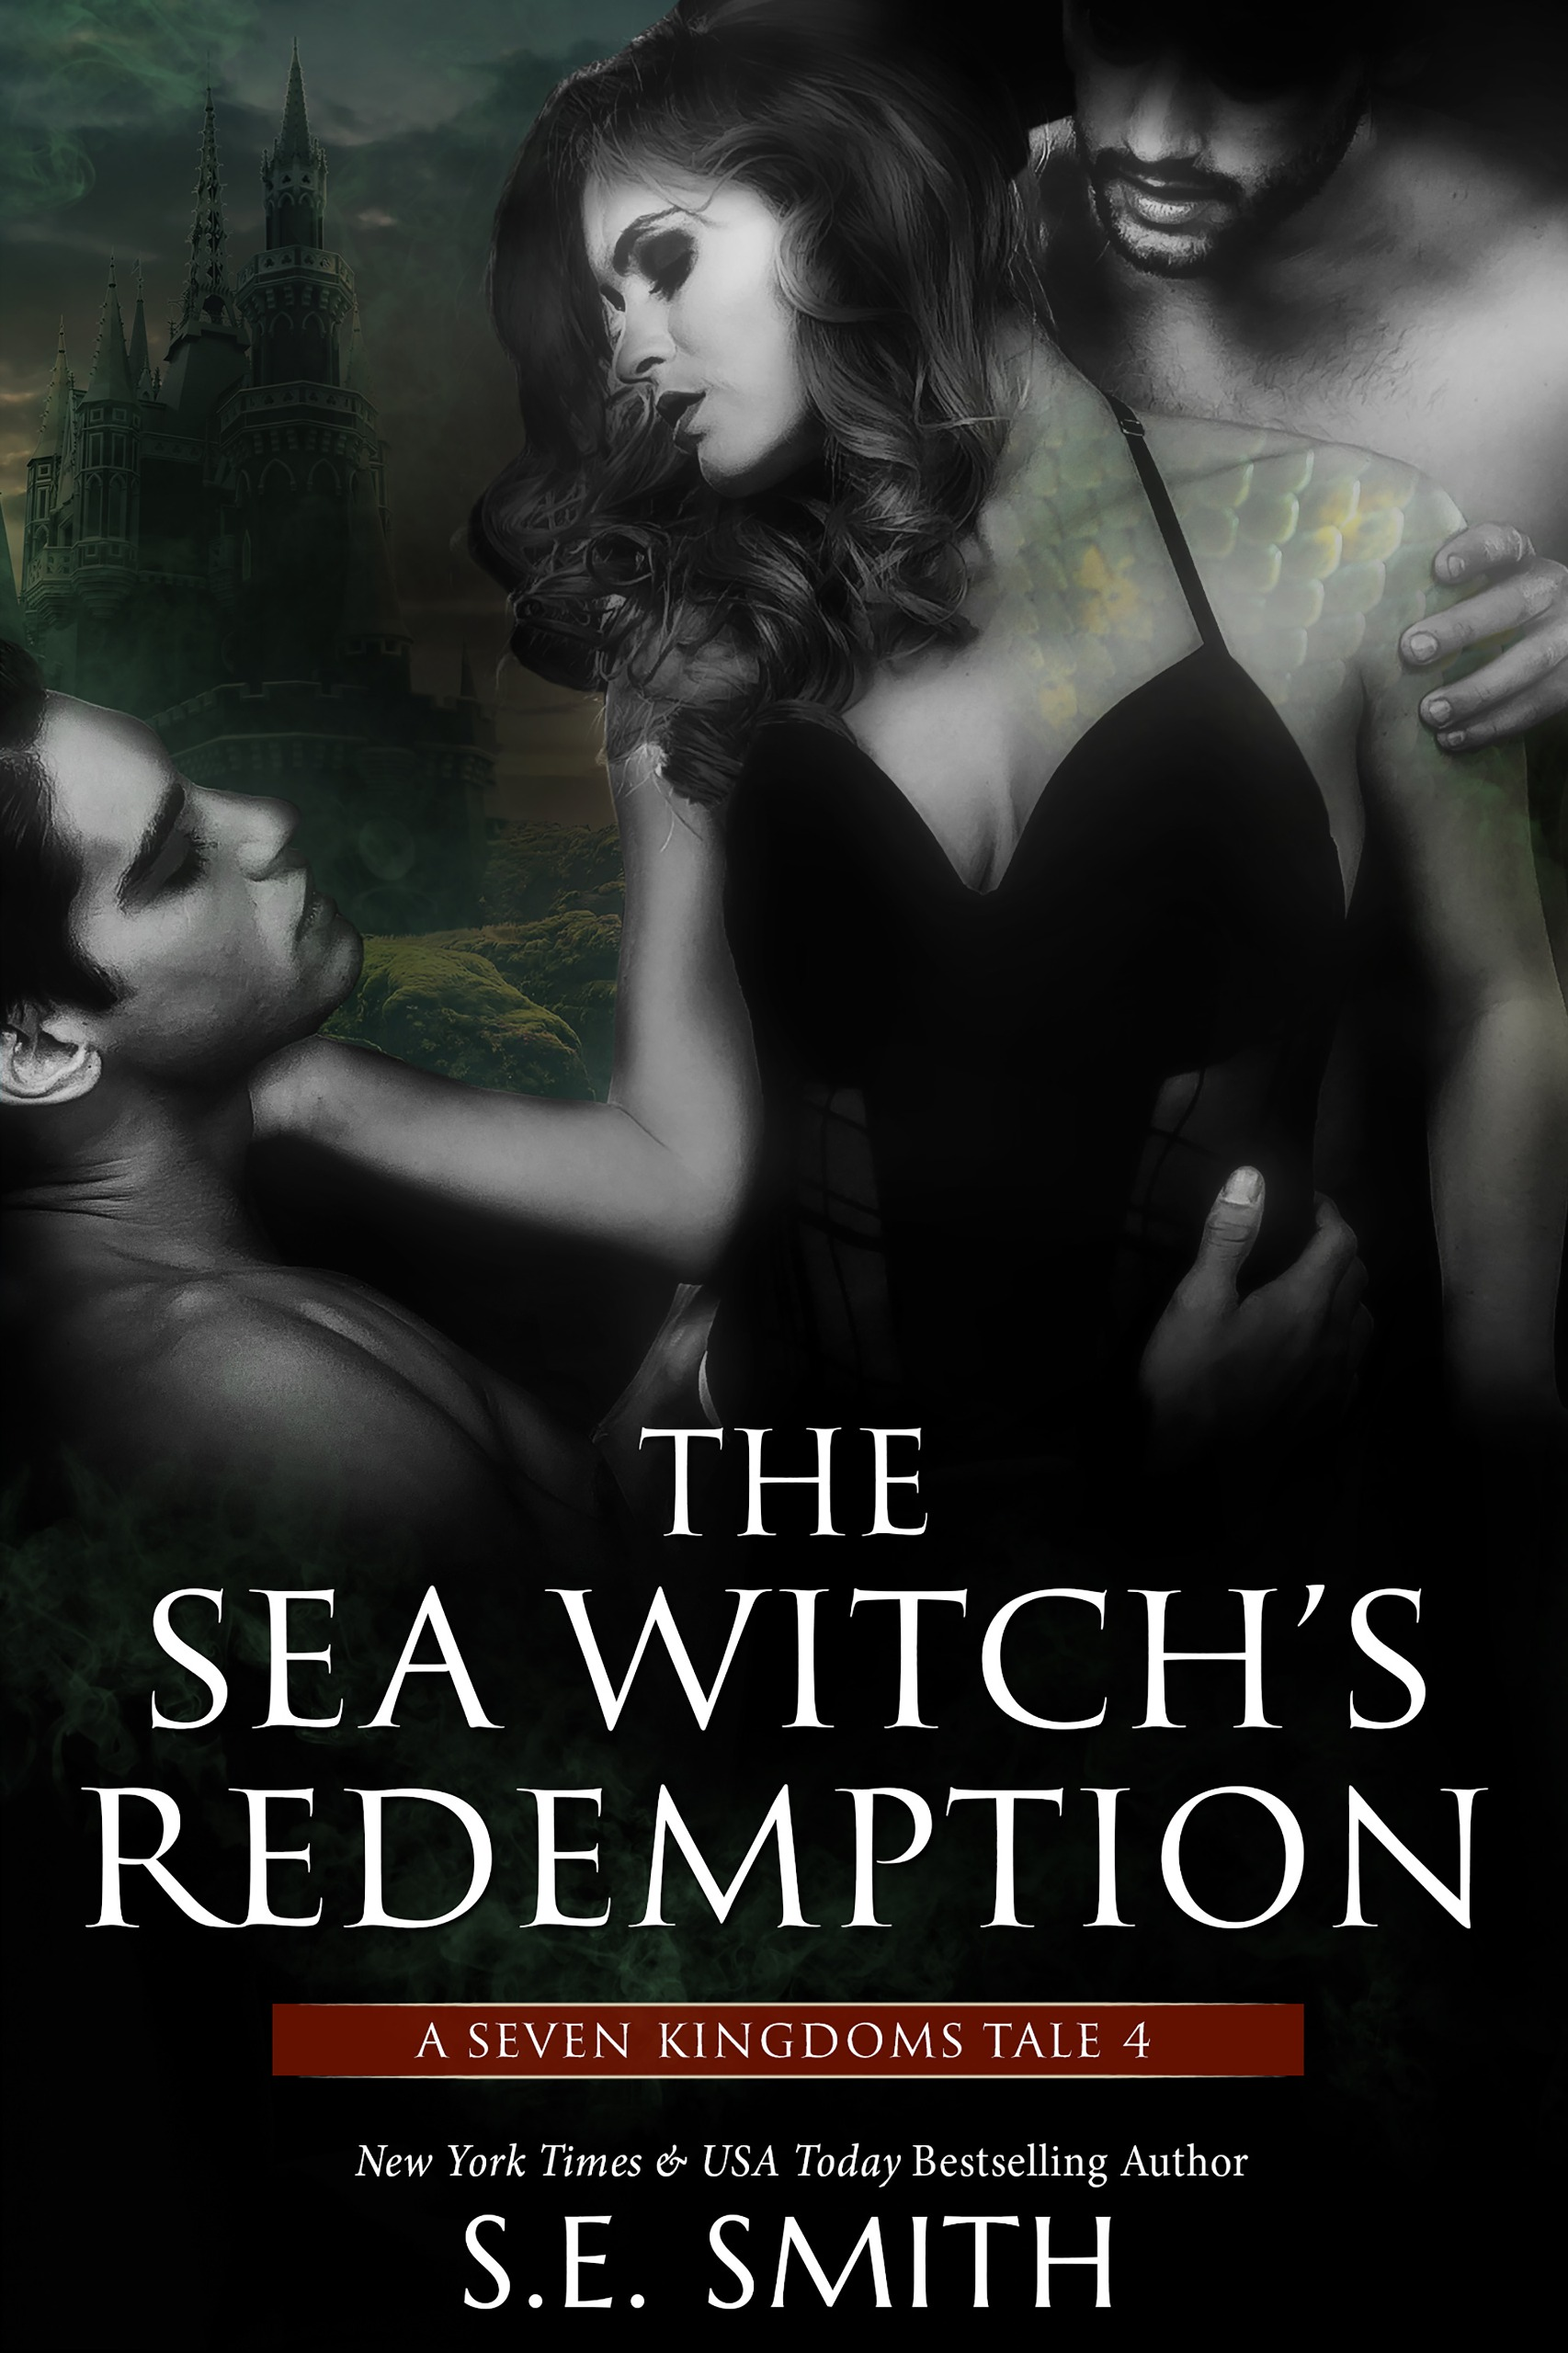 The Sea Witch's Redemption: Seven Kingdoms Tale 4 (ebook: kindle and epub)